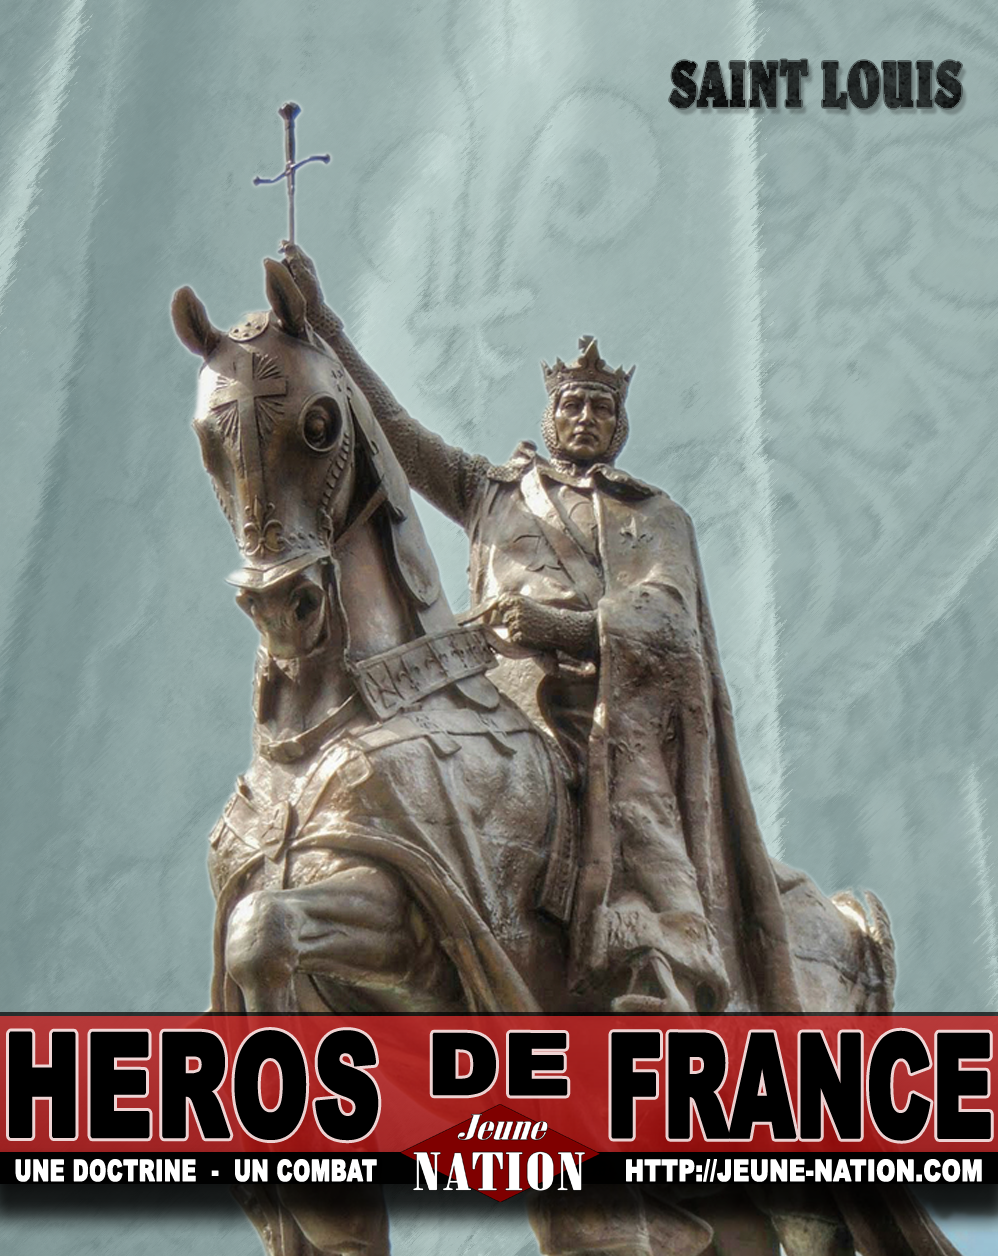 heros-de-france-saint-louis-jeune-nation-